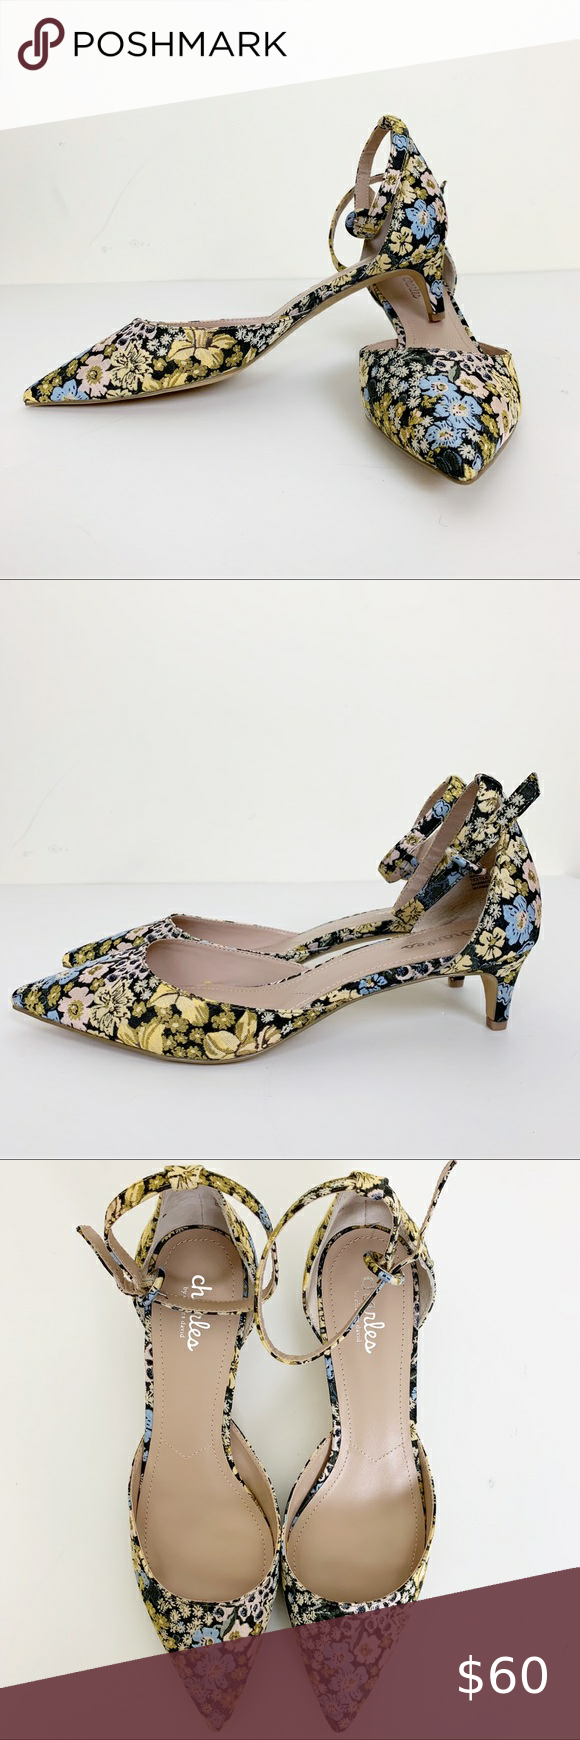 Charles David Floral Kadie Kitten Heel Size 9m In 2020 Heels Kitten Heels Shoes Women Heels